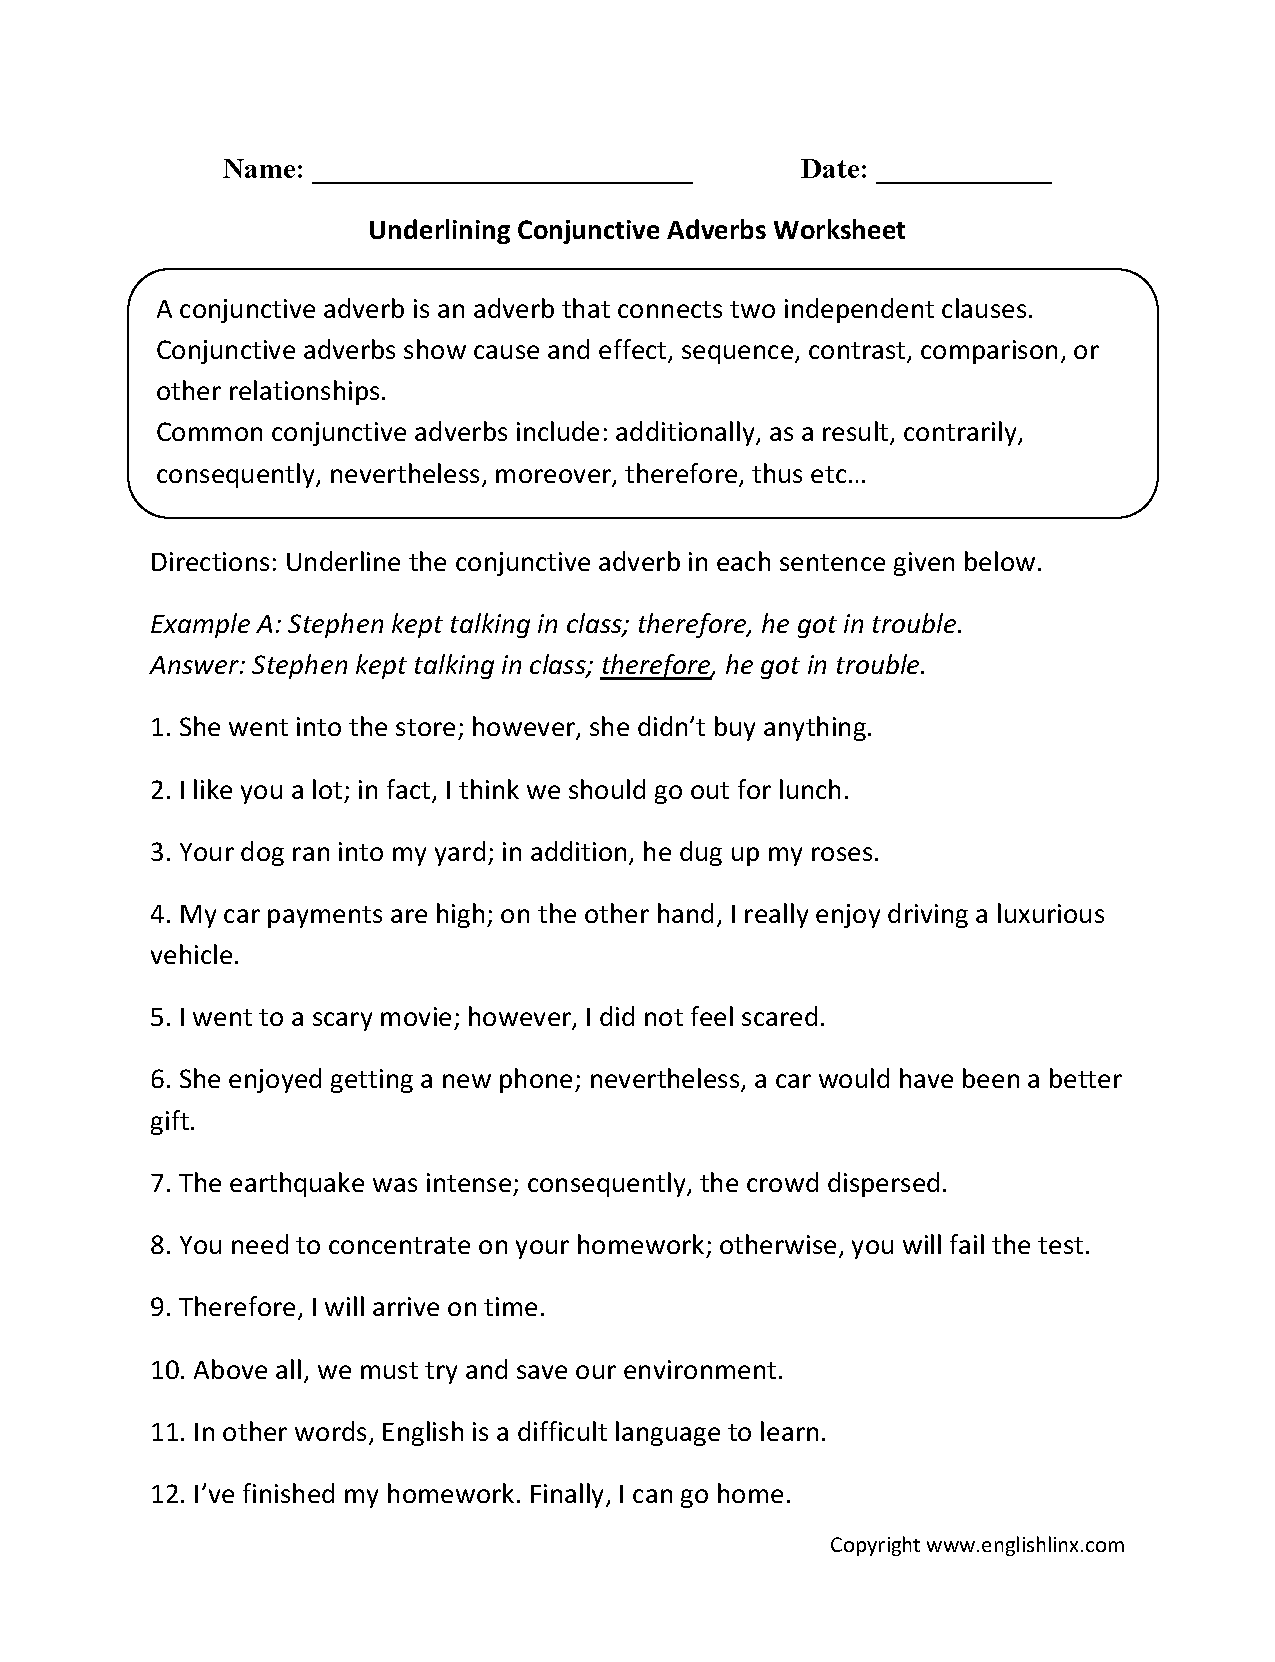 Aldiablosus  Pleasing Englishlinxcom  Conjunctions Worksheets With Exciting Worksheet With Attractive Handwriting Worksheets Pdf Also Line Plots Worksheets In Addition Free St Grade Math Worksheets And Levels Of Organization Worksheet As Well As Long E Worksheets Additionally Place Value Worksheets Rd Grade From Englishlinxcom With Aldiablosus  Exciting Englishlinxcom  Conjunctions Worksheets With Attractive Worksheet And Pleasing Handwriting Worksheets Pdf Also Line Plots Worksheets In Addition Free St Grade Math Worksheets From Englishlinxcom